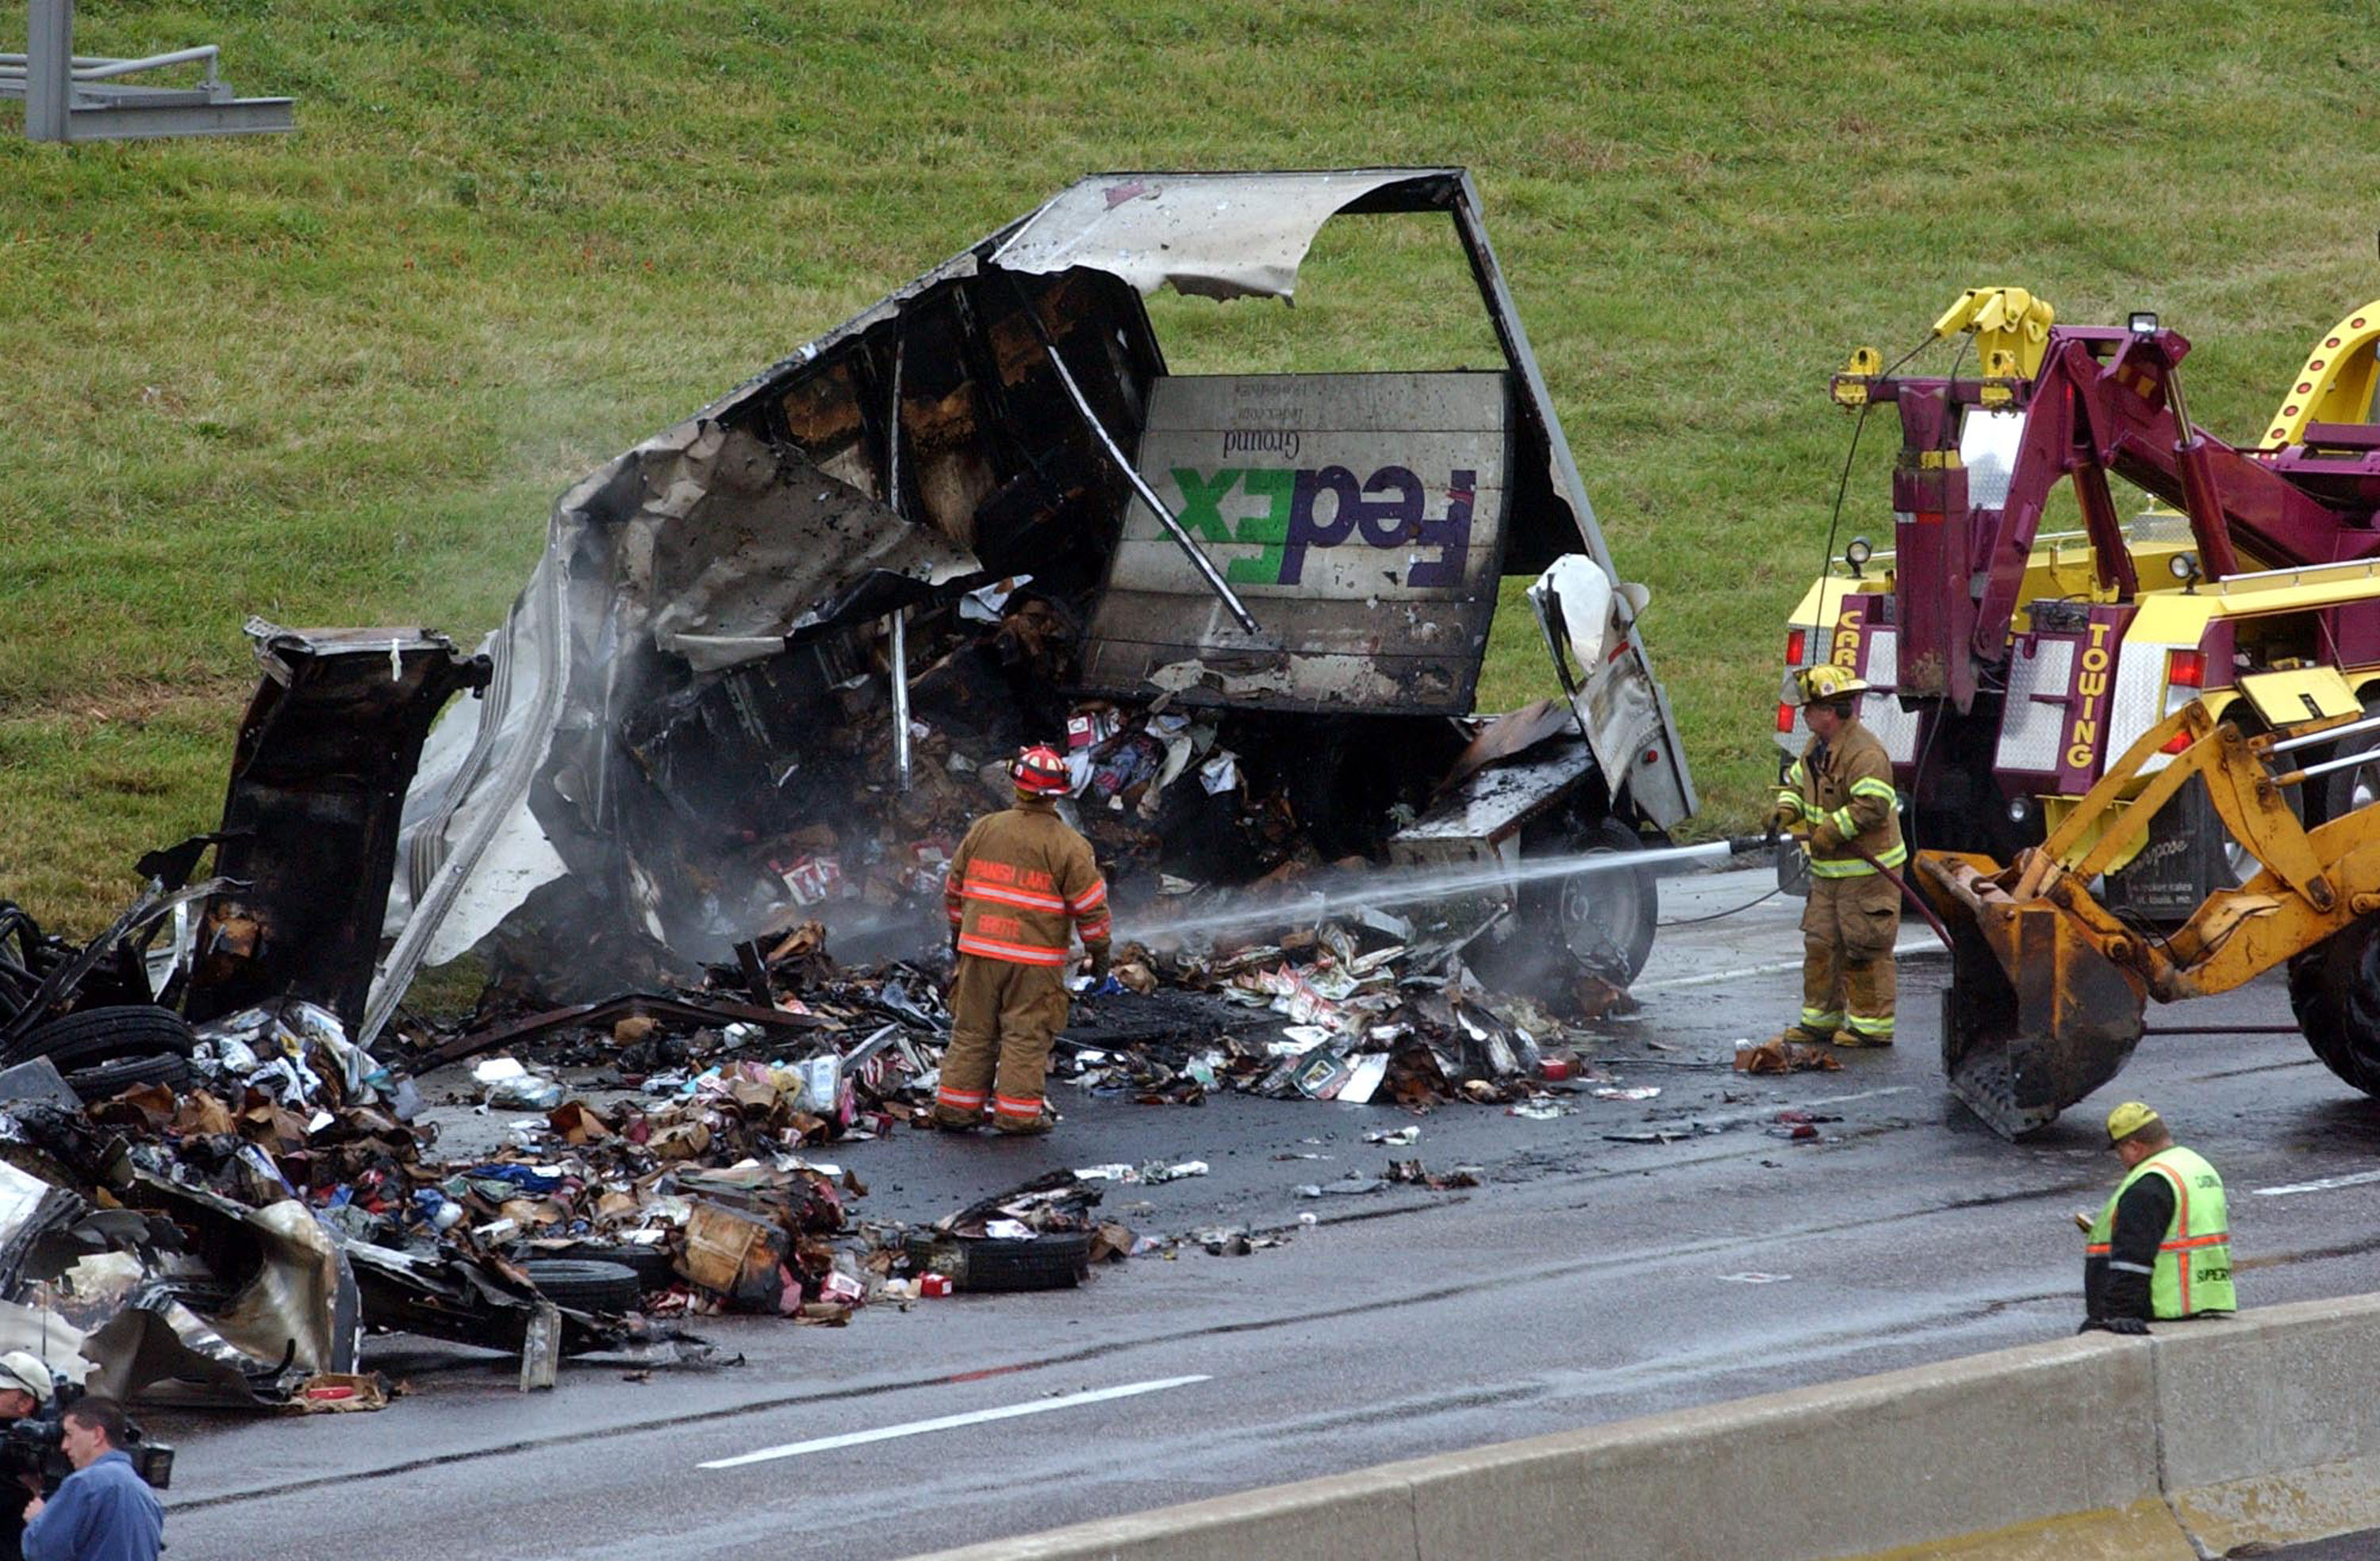 Fed-Ex Truck Burns In Fiery Accident